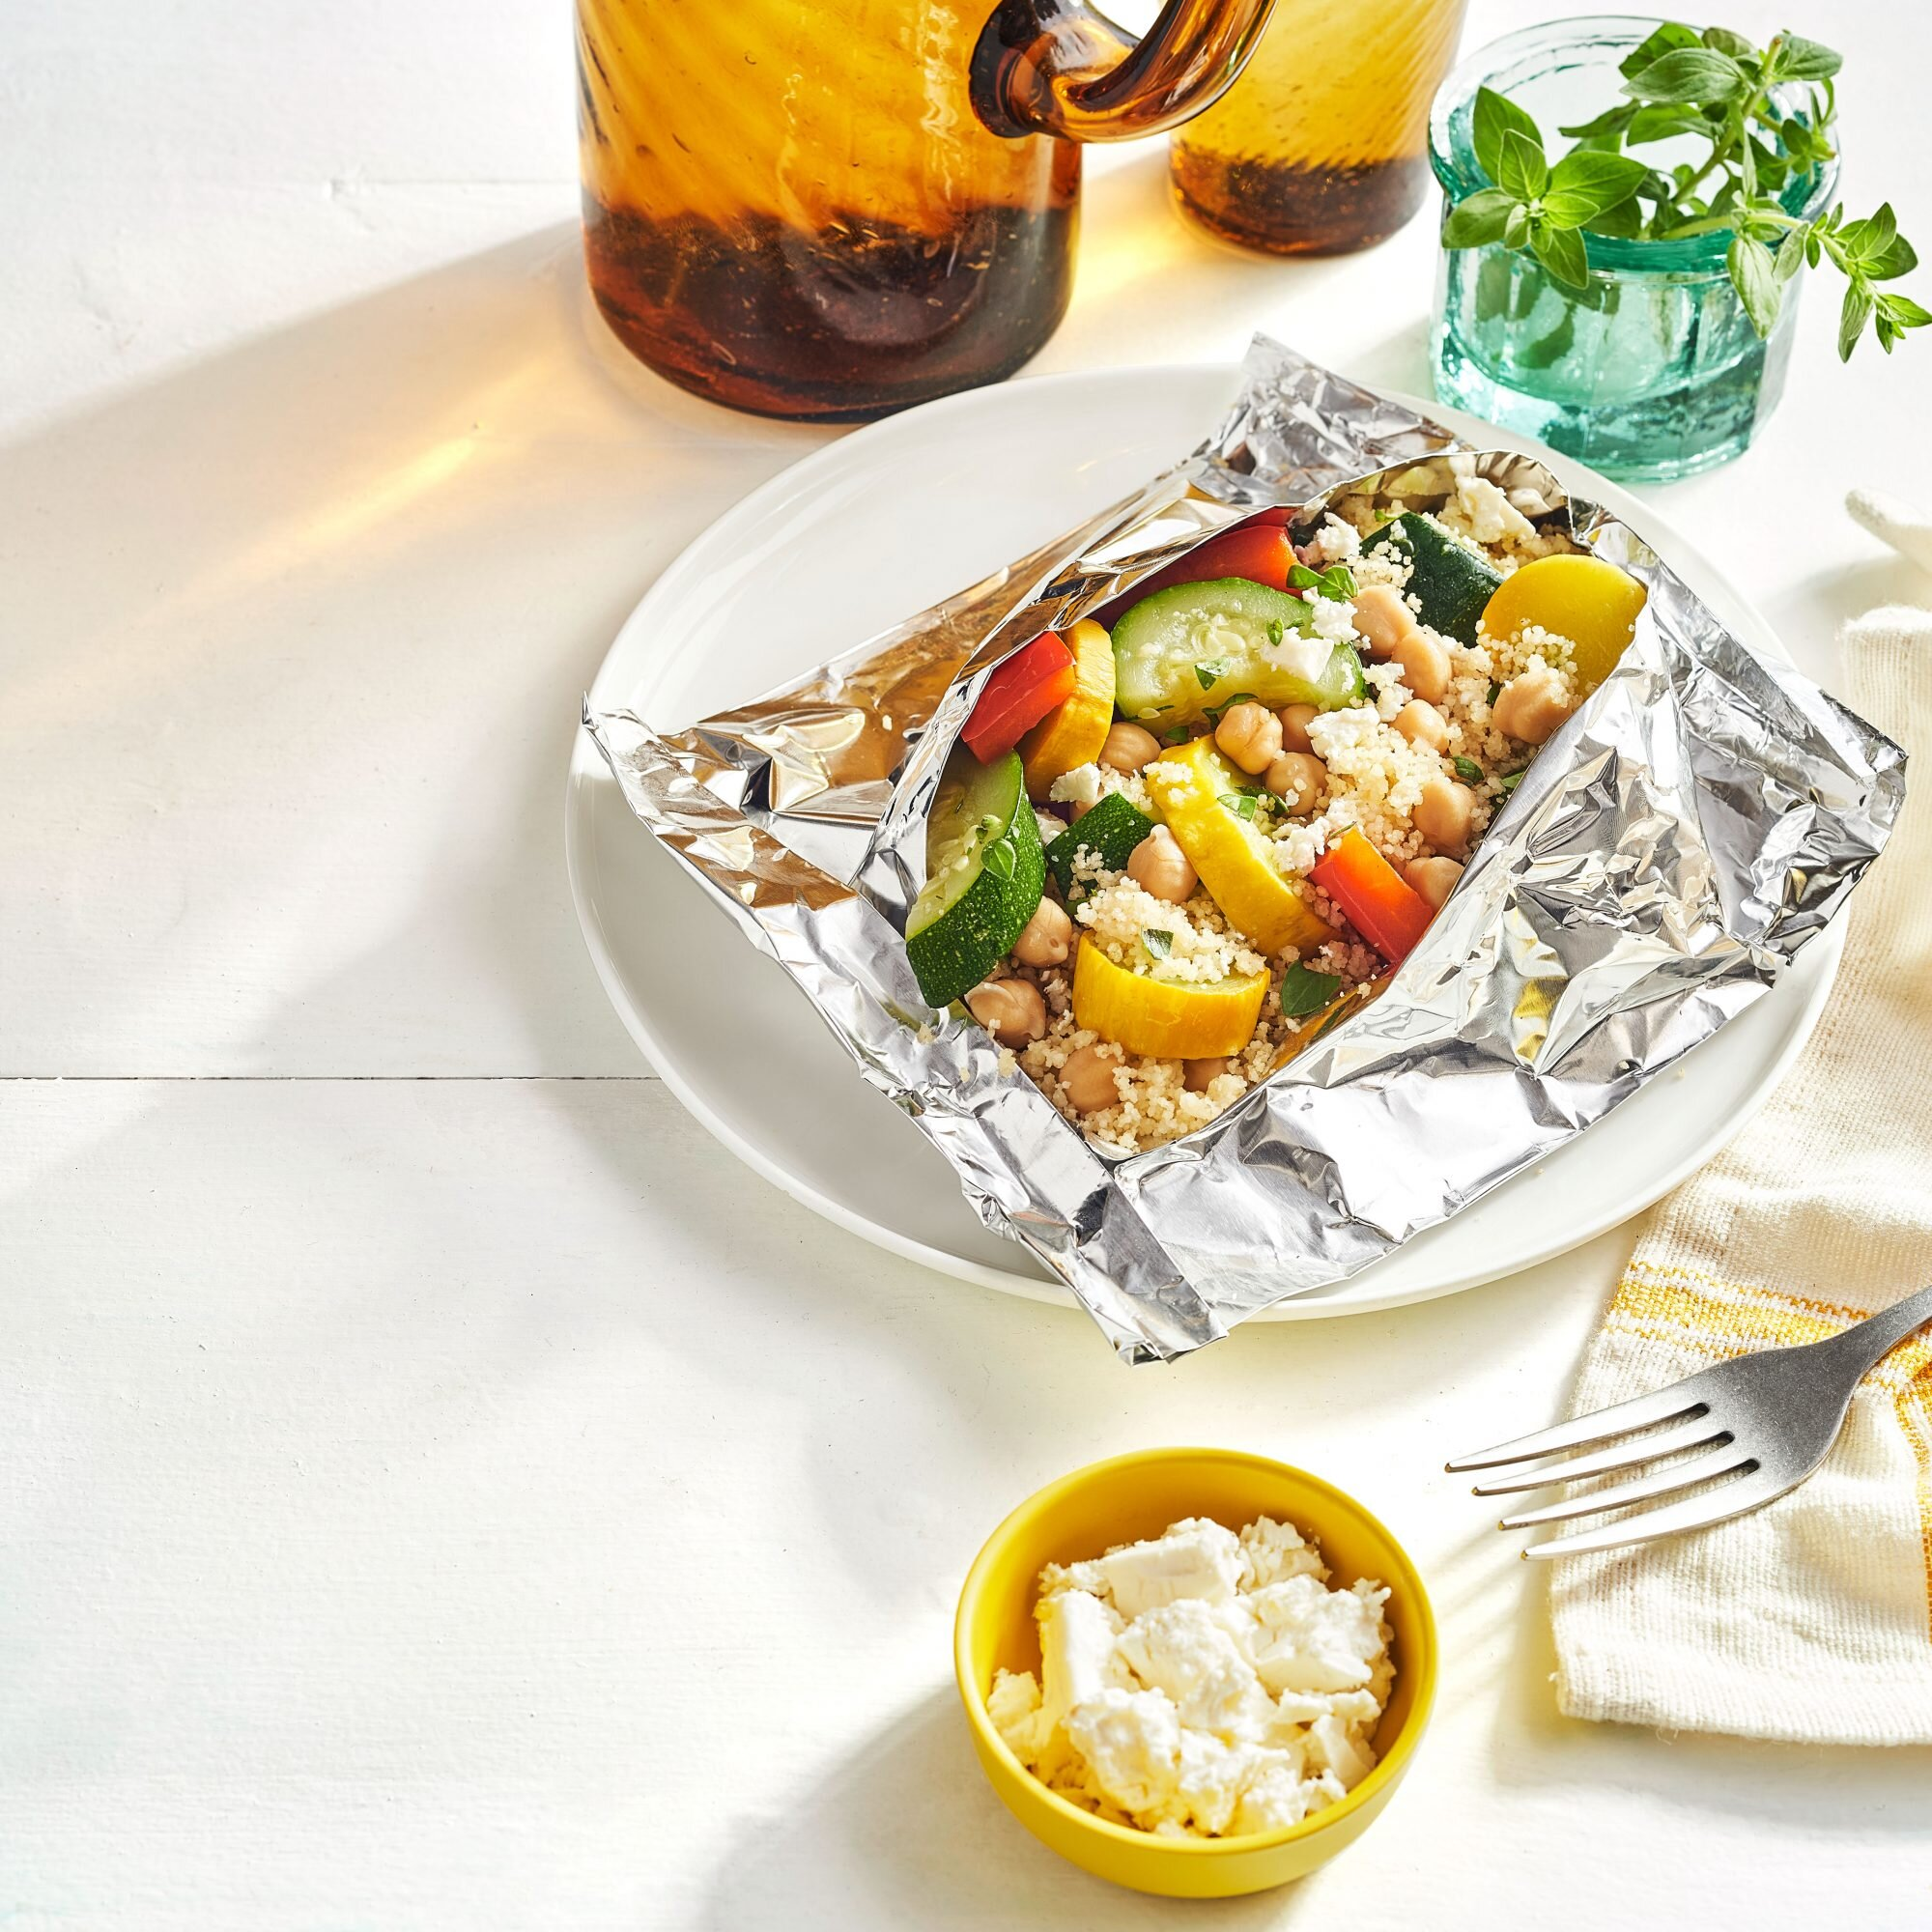 Grilled Vegetables with Chickpeas, Feta, and Couscous